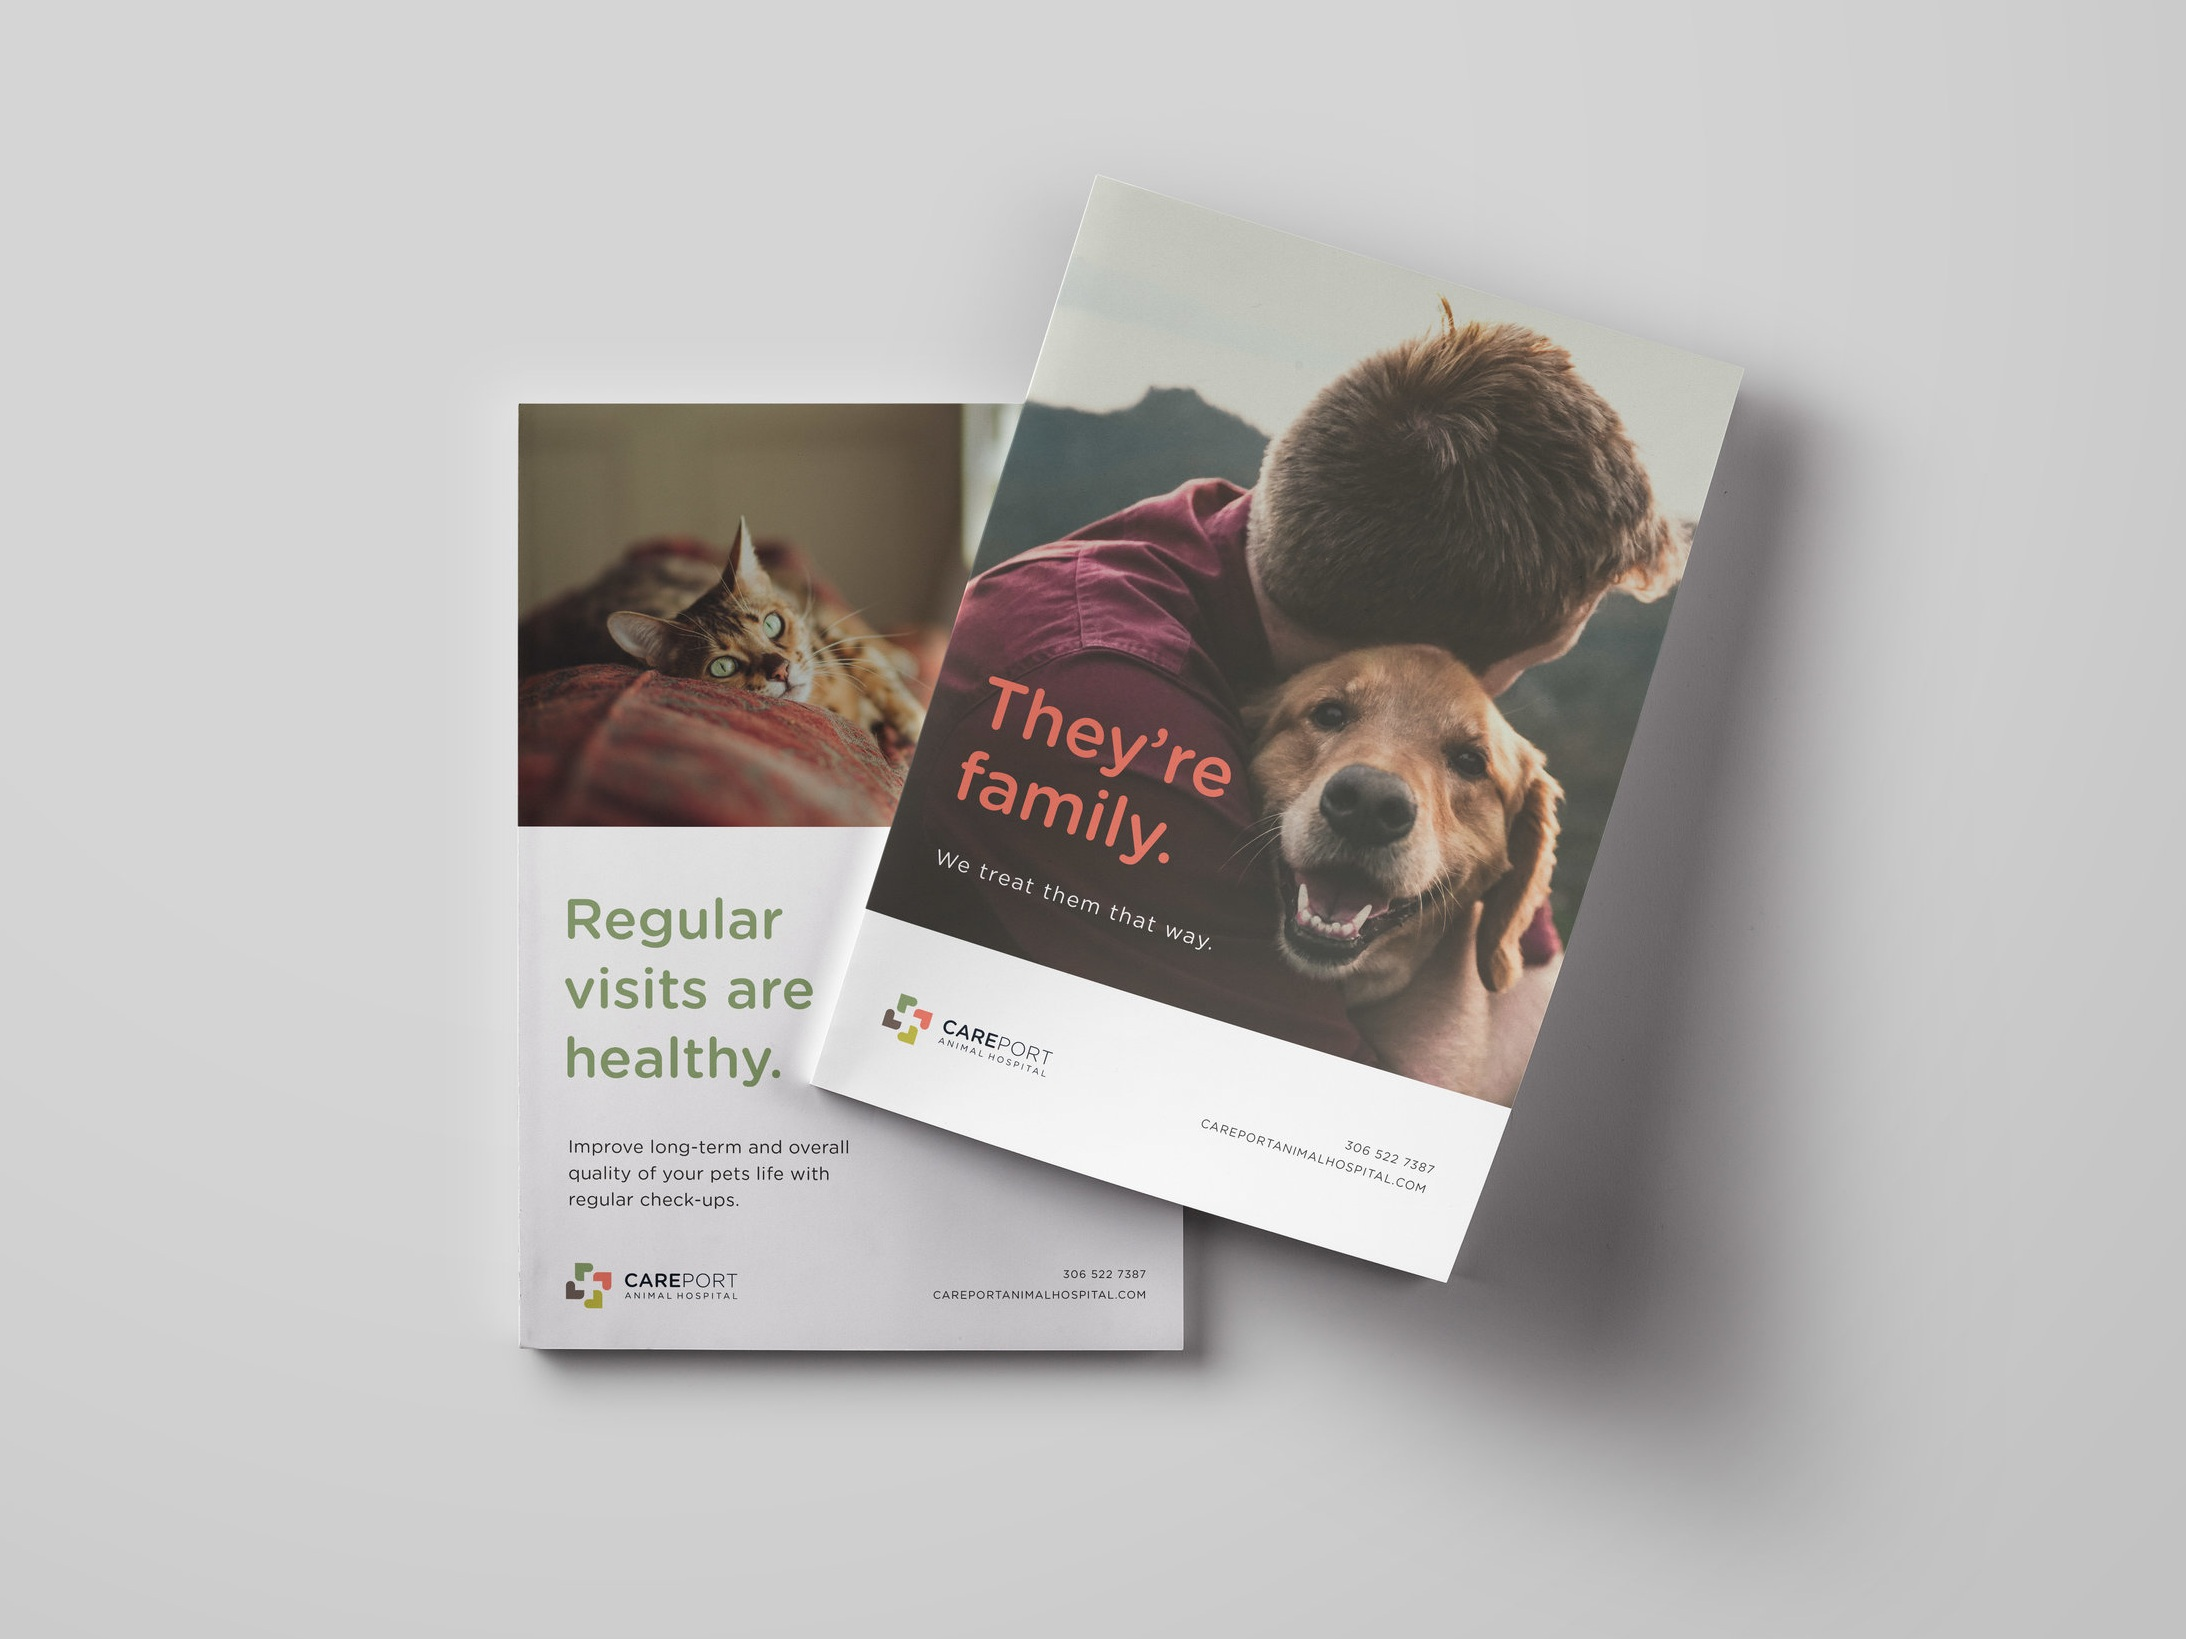 Careport Animal Hospital - Brand Identity // Website